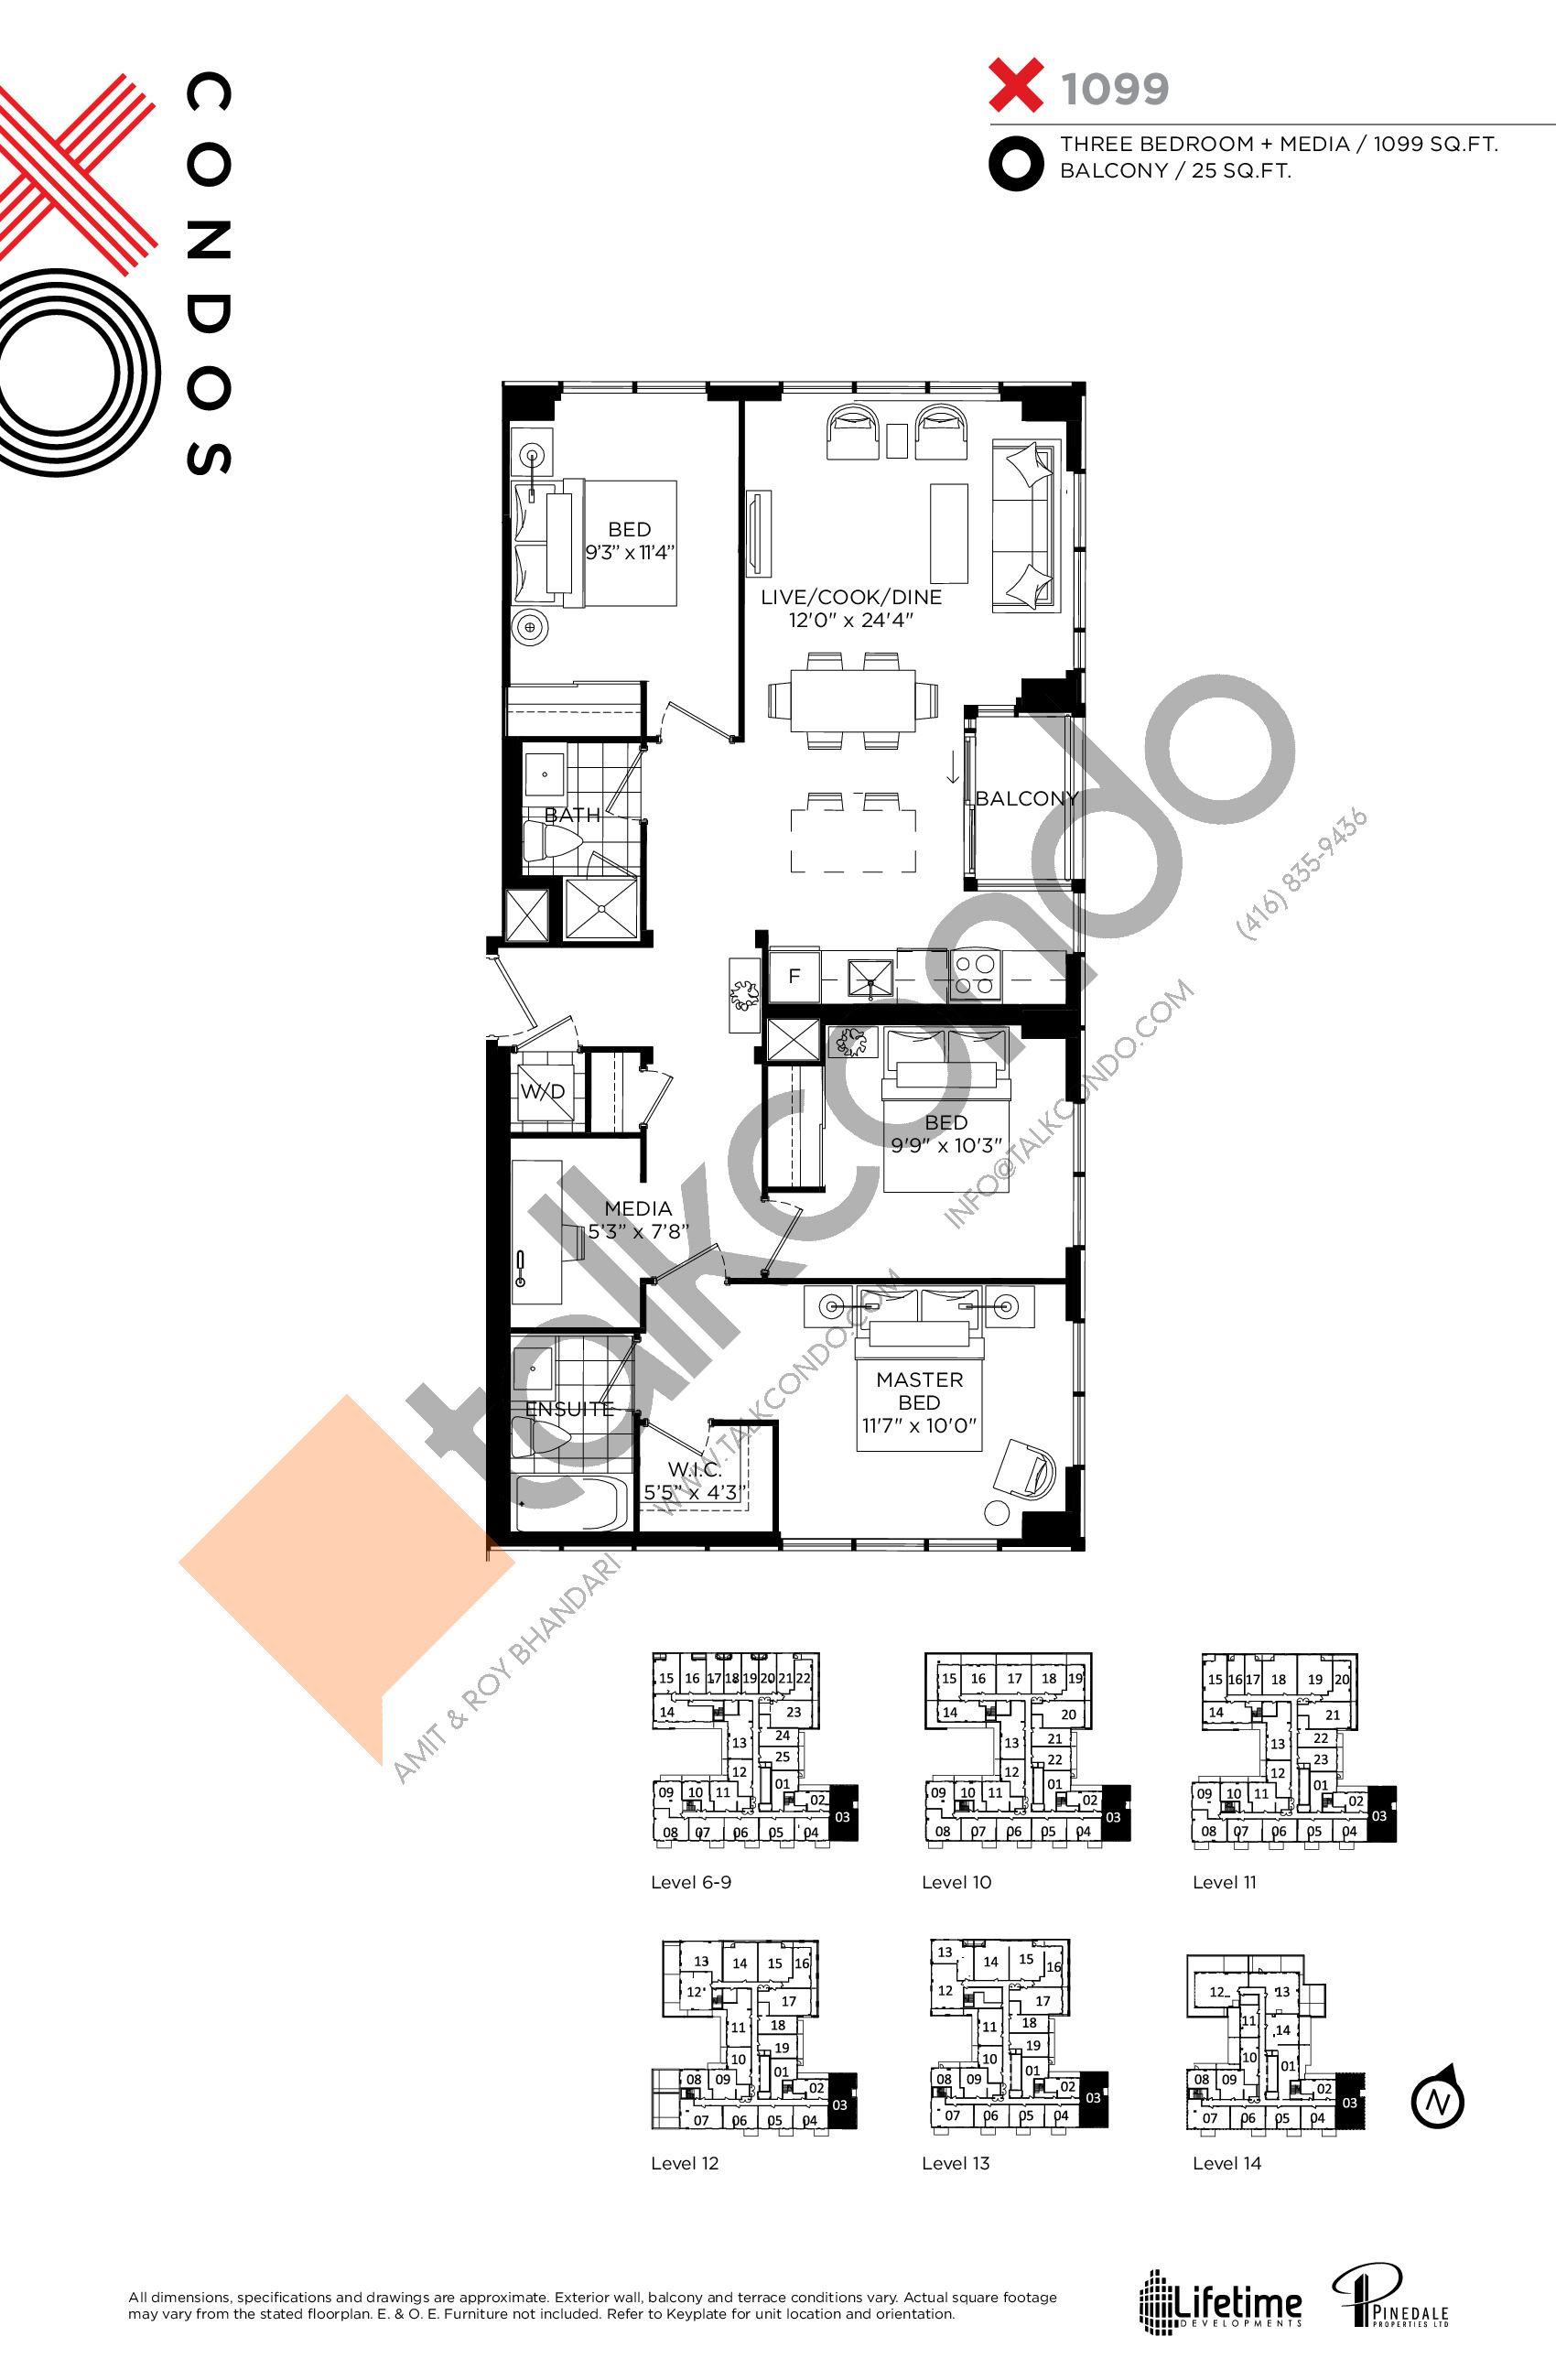 X1099 Floor Plan at XO Condos - 1099 sq.ft